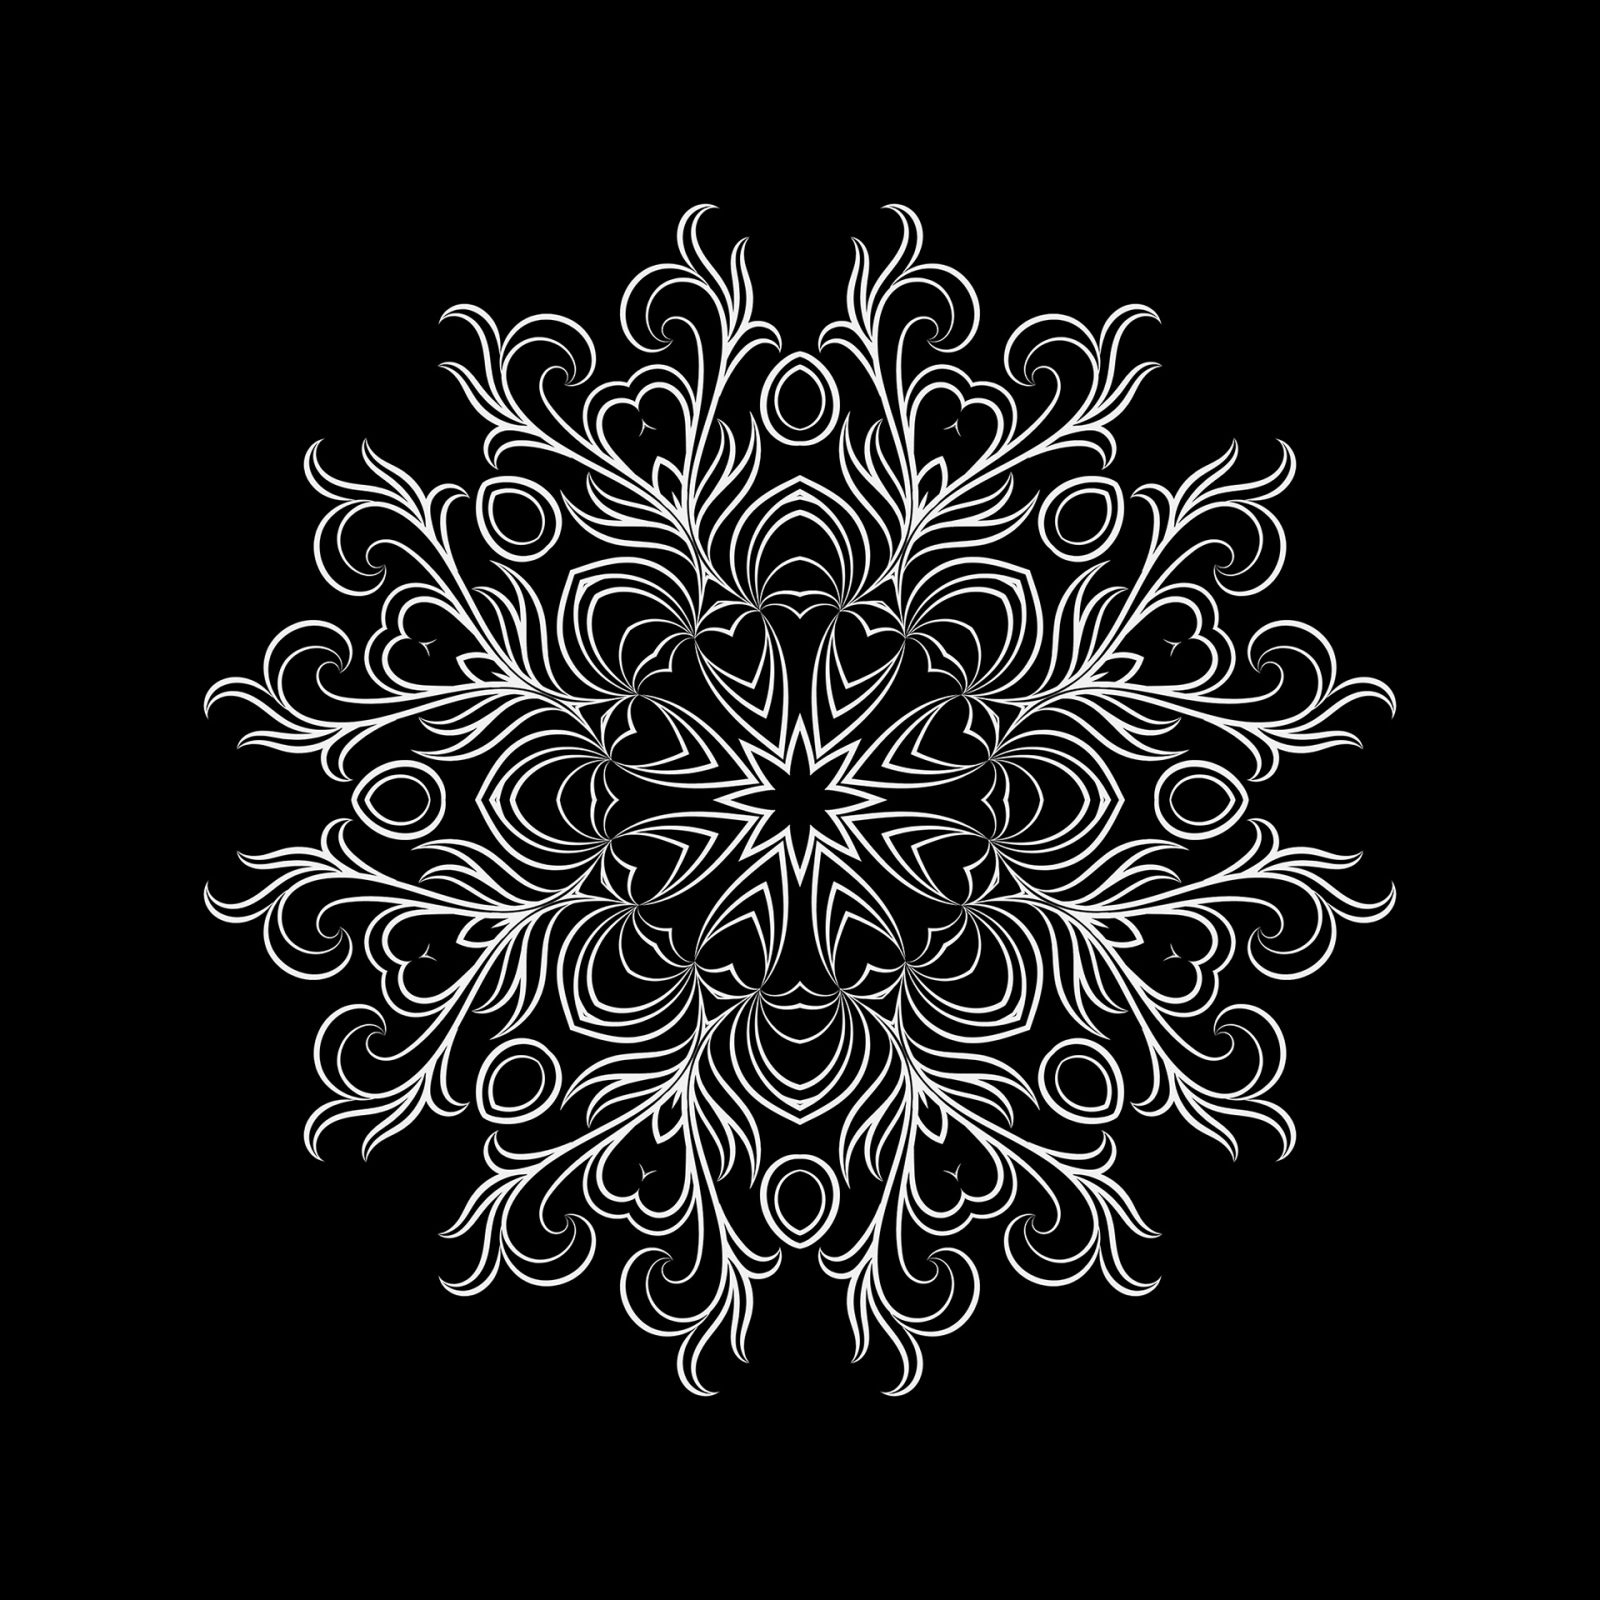 Mandala 3 - Artwork by Henry Egloff